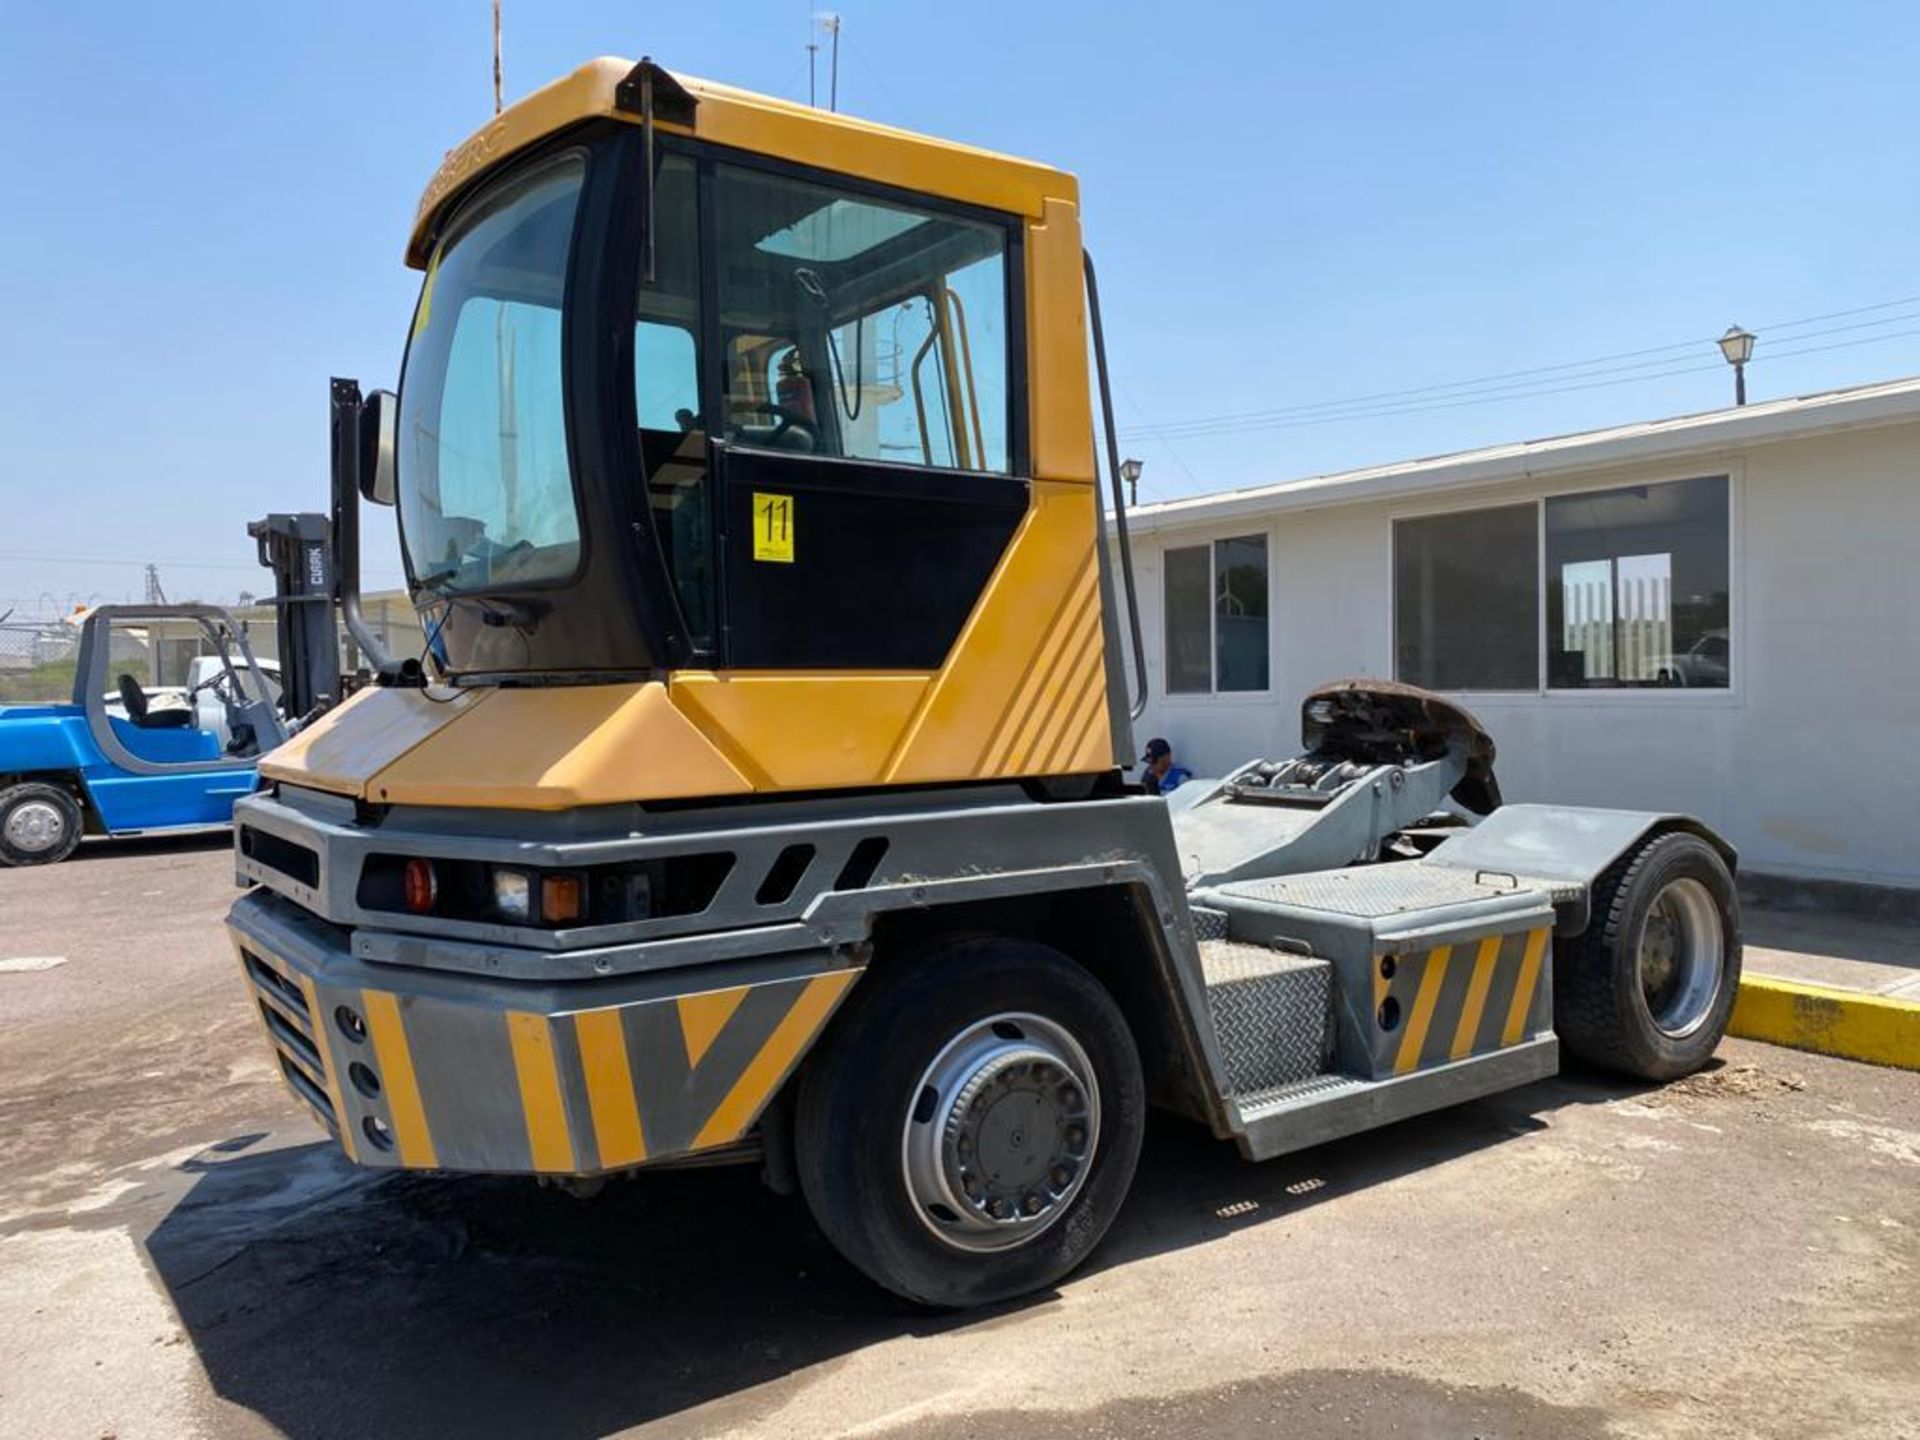 Terberg Capacity 2002 Terminal Tractor, automatic transmission - Image 7 of 57